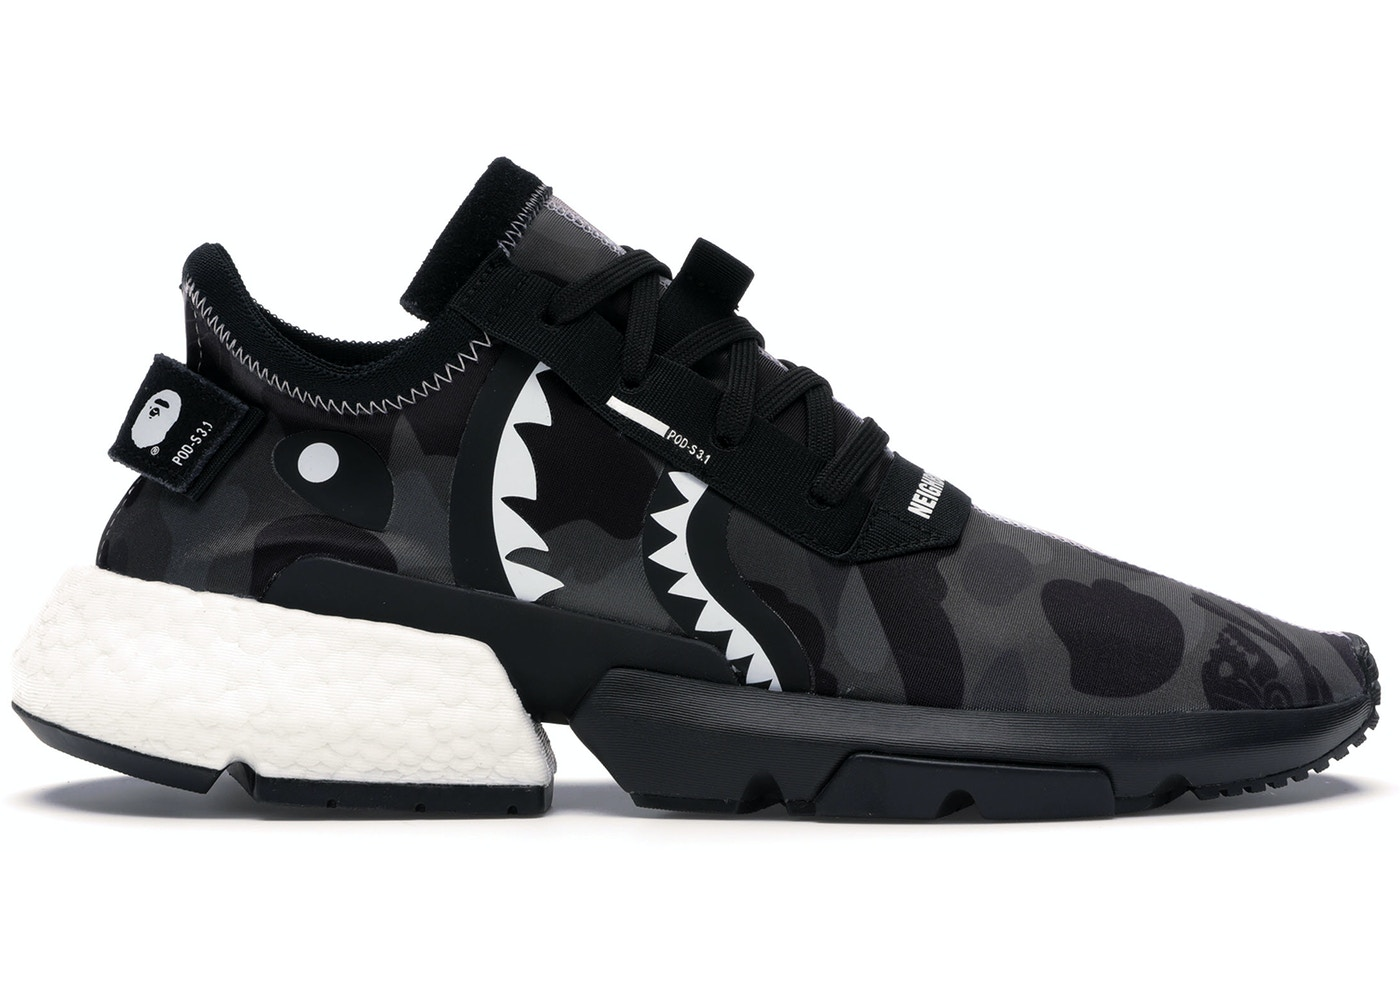 12cc4209 adidas POD S3.1 Bape x Neighborhood - EE9431